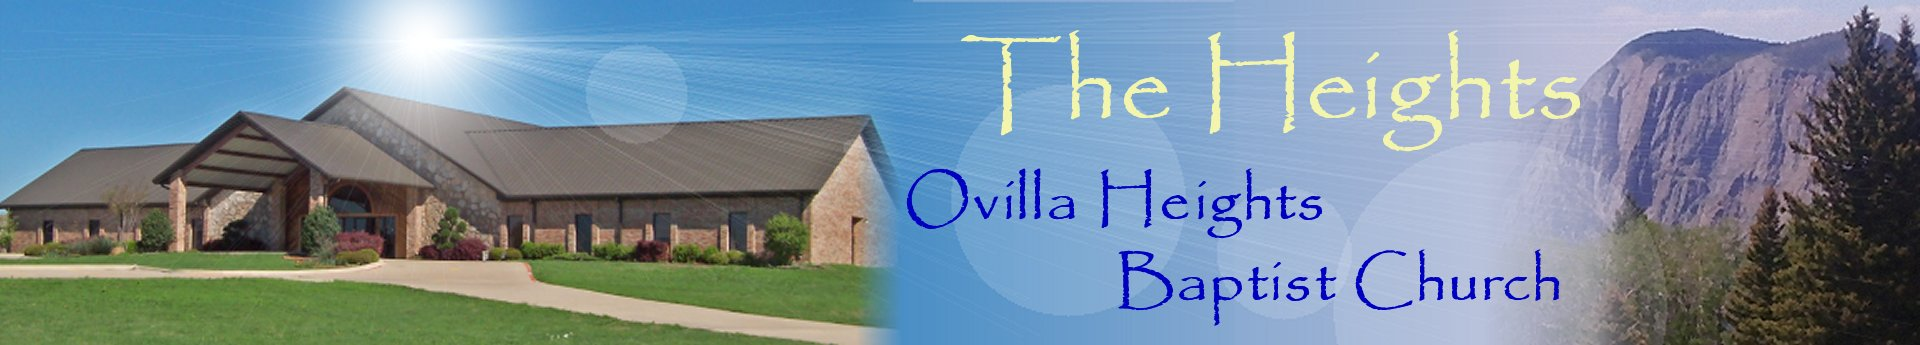 Ovilla Heights Baptist Church